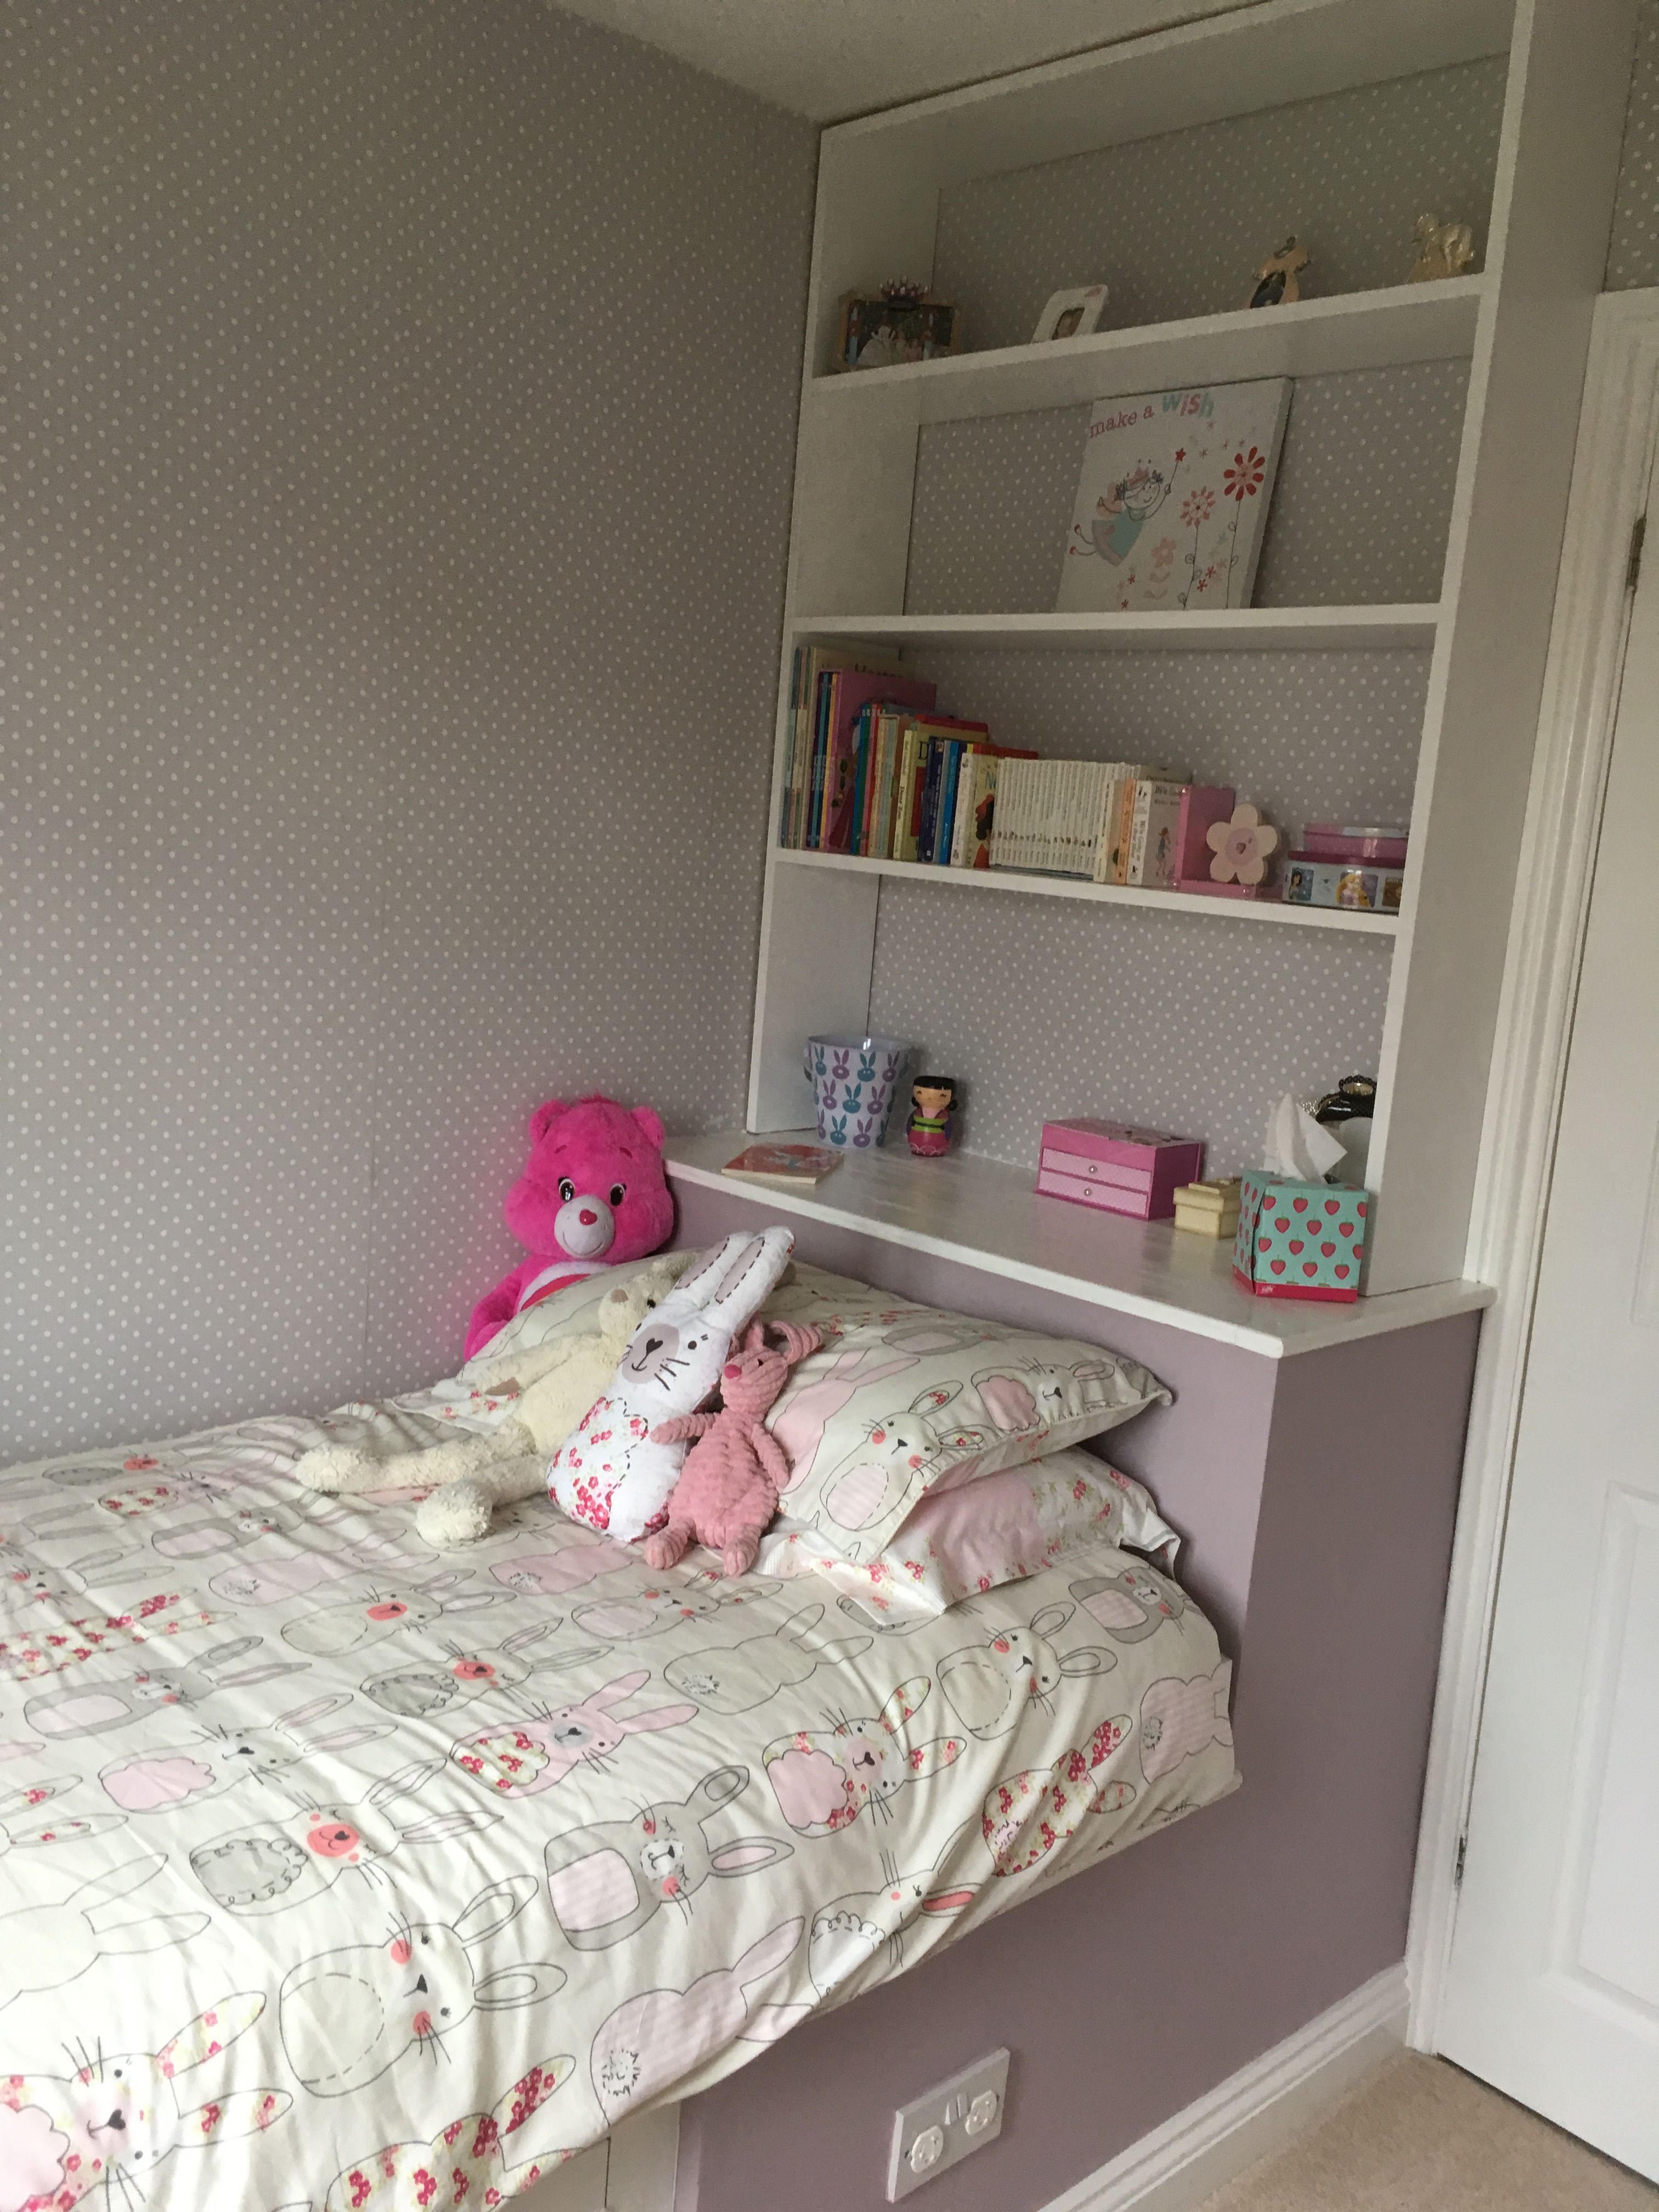 Perfect Finish With Bedding Painted Areas And Storages Lips Shelves Box Room Bedroom Ideas Small Bedroom Storage Box Bedroom